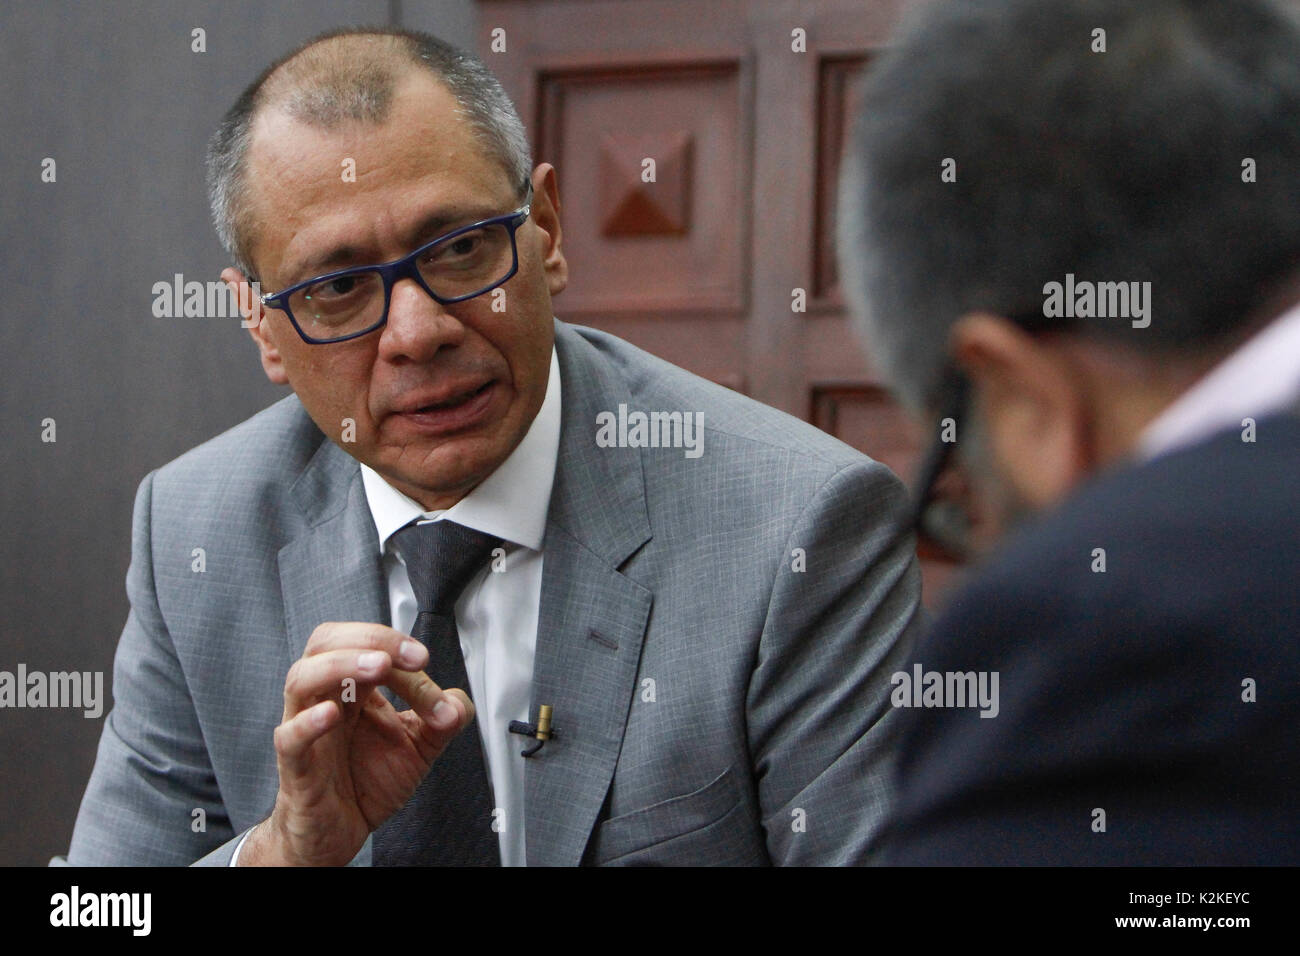 Quito, Ecuador. 30th Aug, 2017. The vice-president Jorge Glas, photographed in his office in Quito, Ecuador, 30 - Stock Image